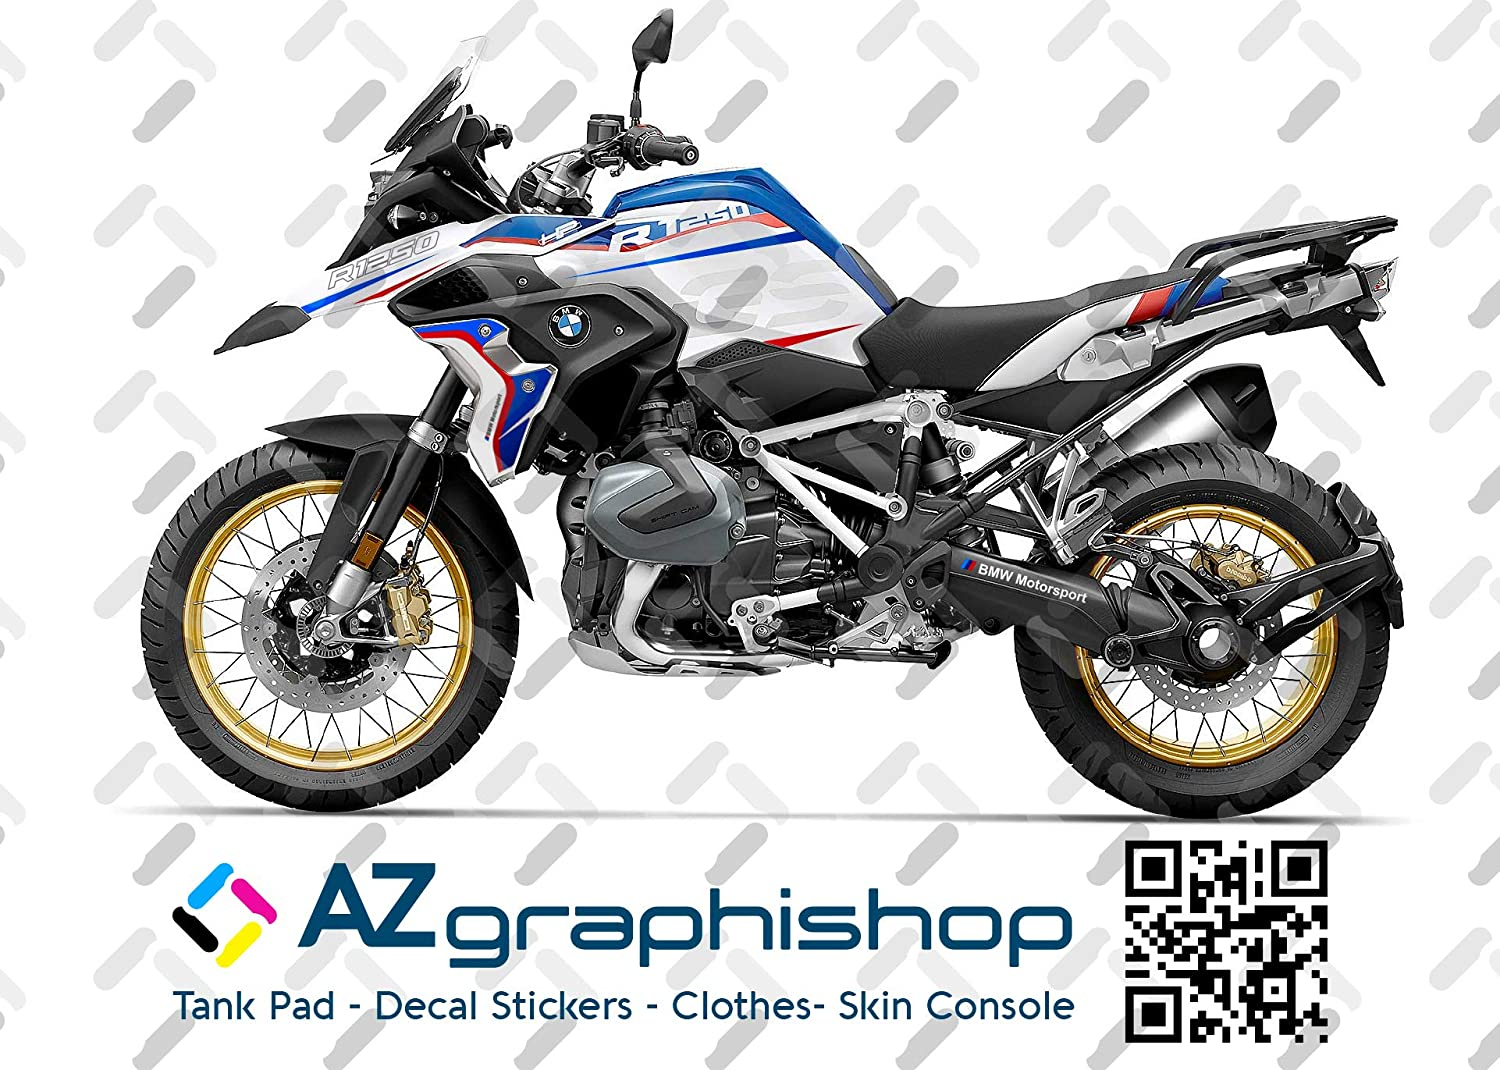 /Black R1200GS/ /Reflective Stickers for Motorcycle Handlebars and Mudguard with the inscription GS/